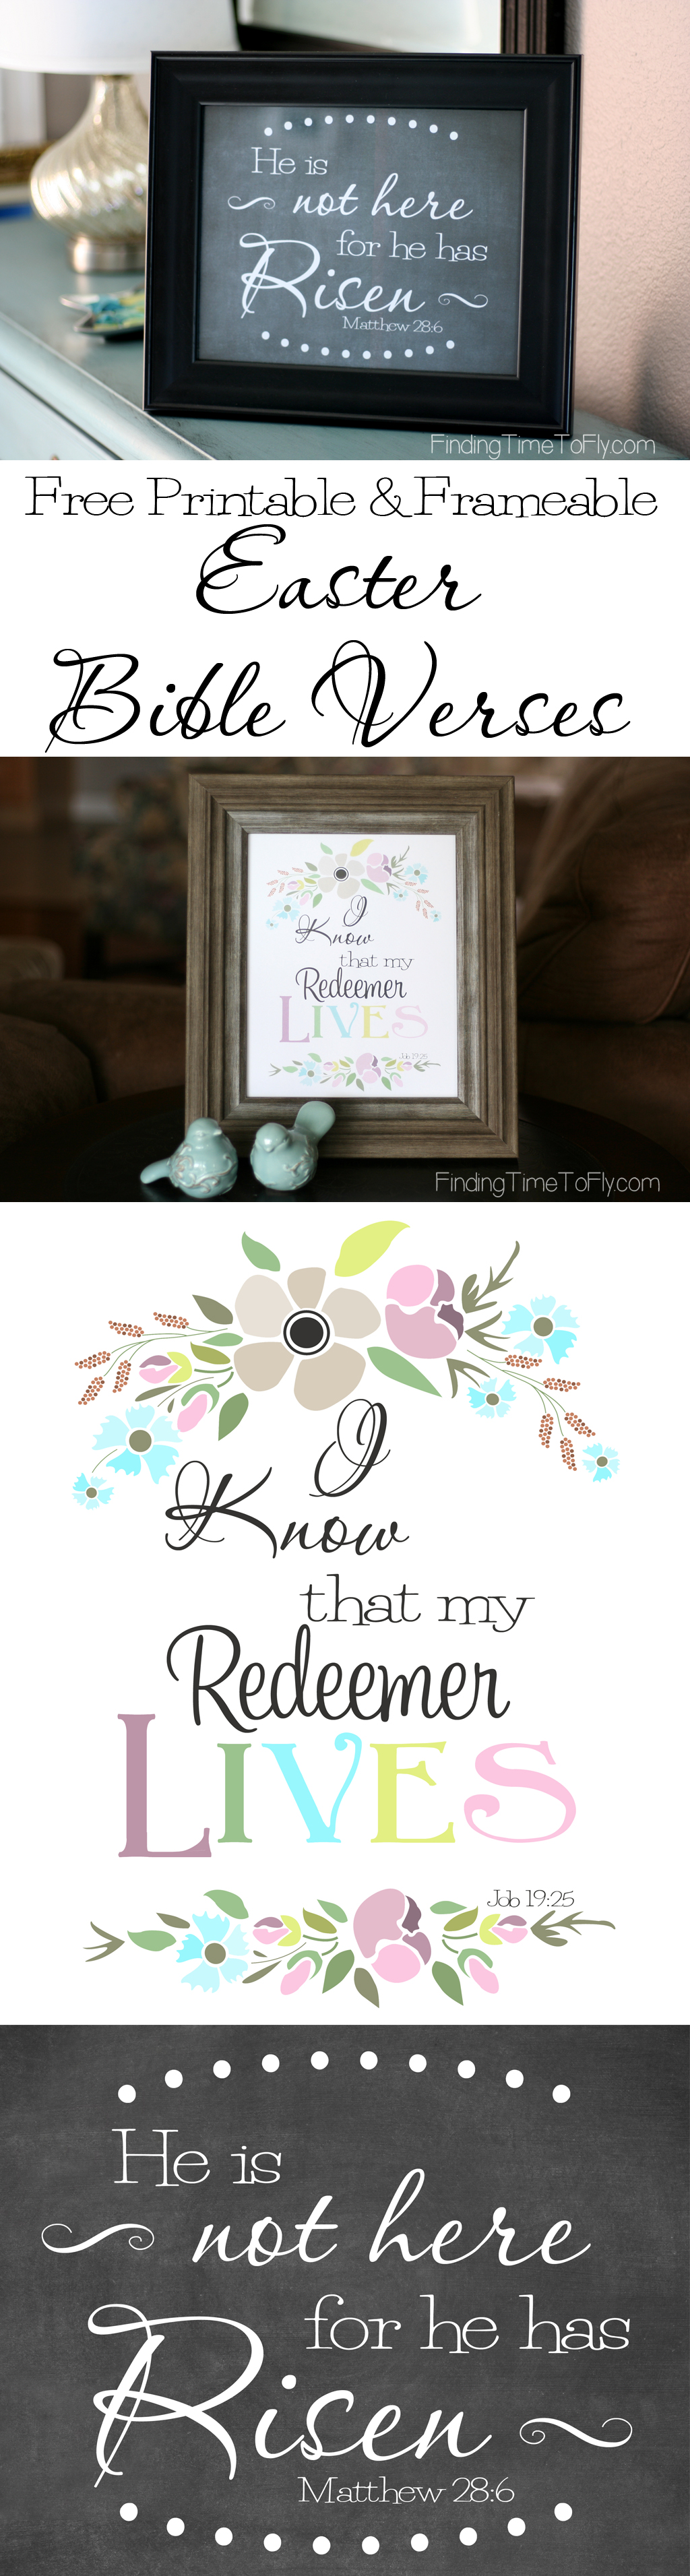 free printable bible verse for easter he has risen and redeemer